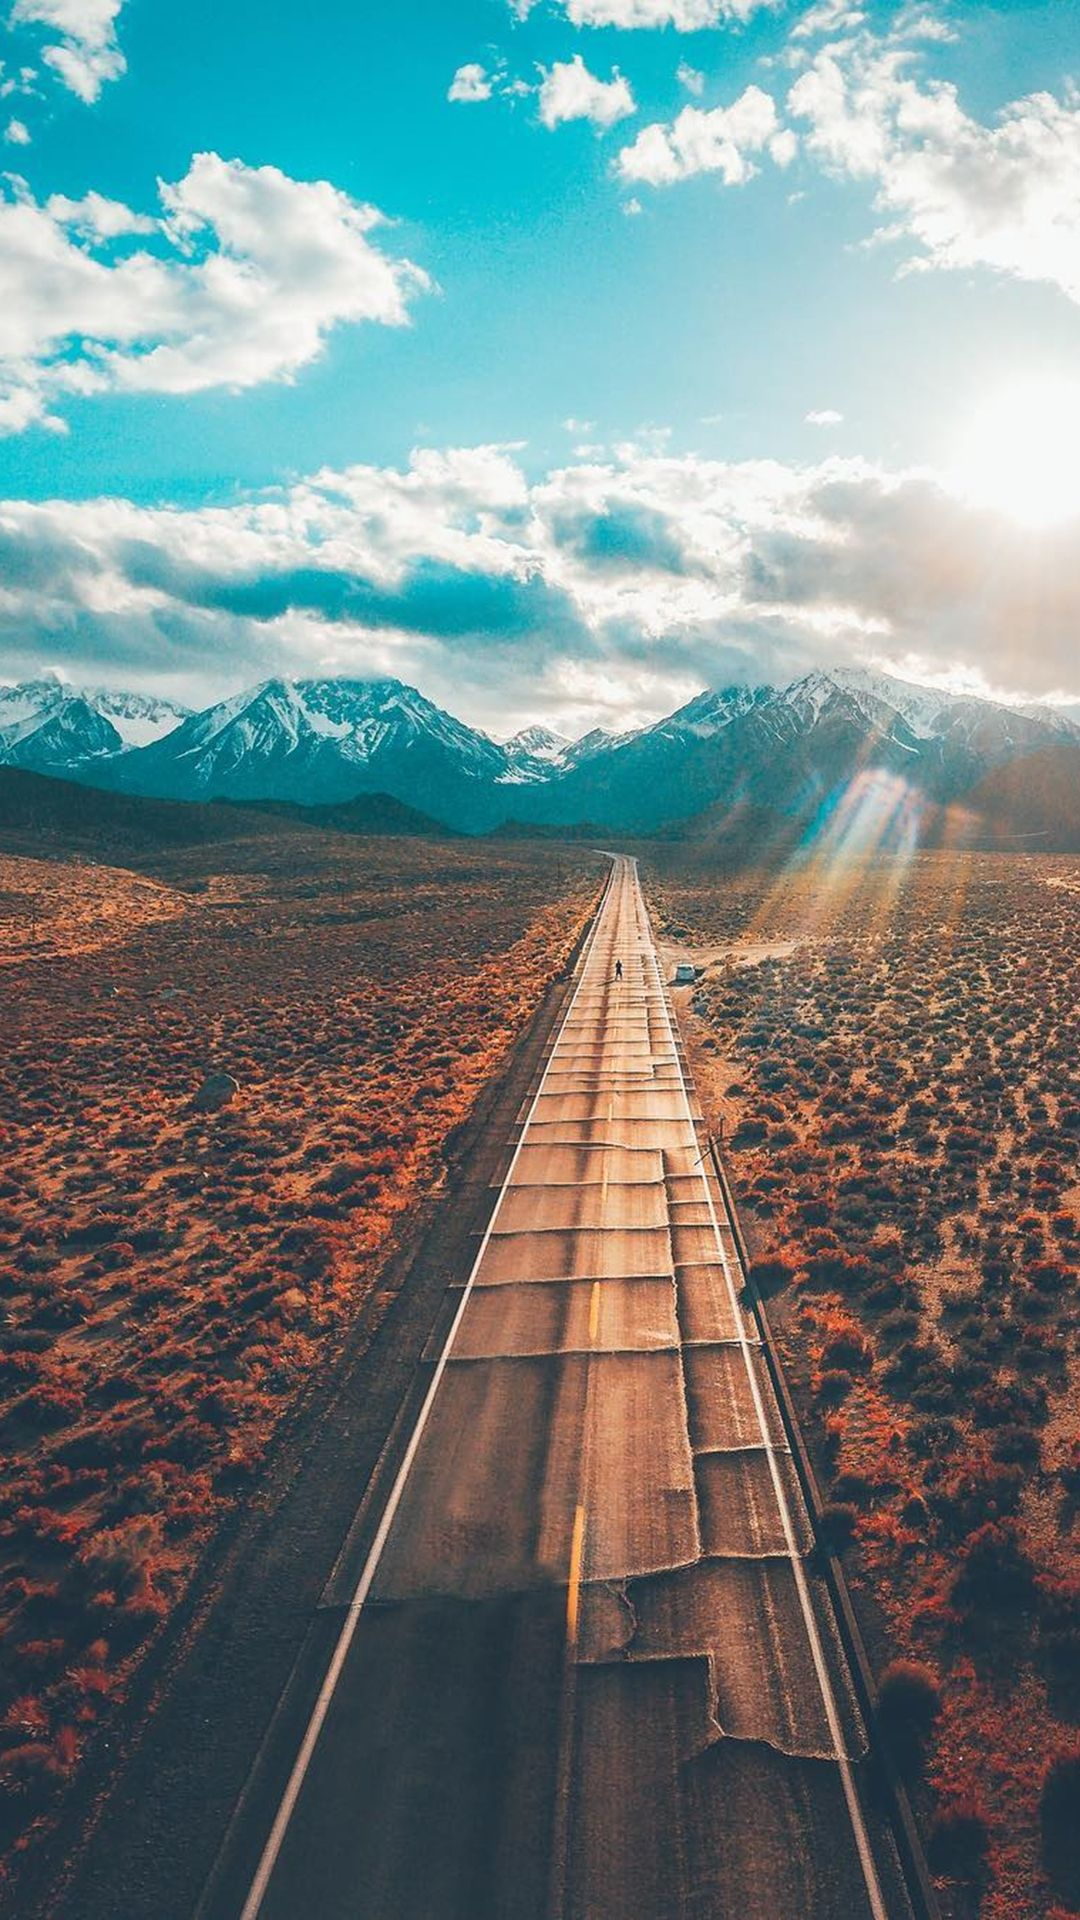 Mammoth Lakes Tap To See More Beautiful Scnereies From Nature Wallpapers Mobile9 Landscape Photography Aerial Photography Drone Aerial Photography